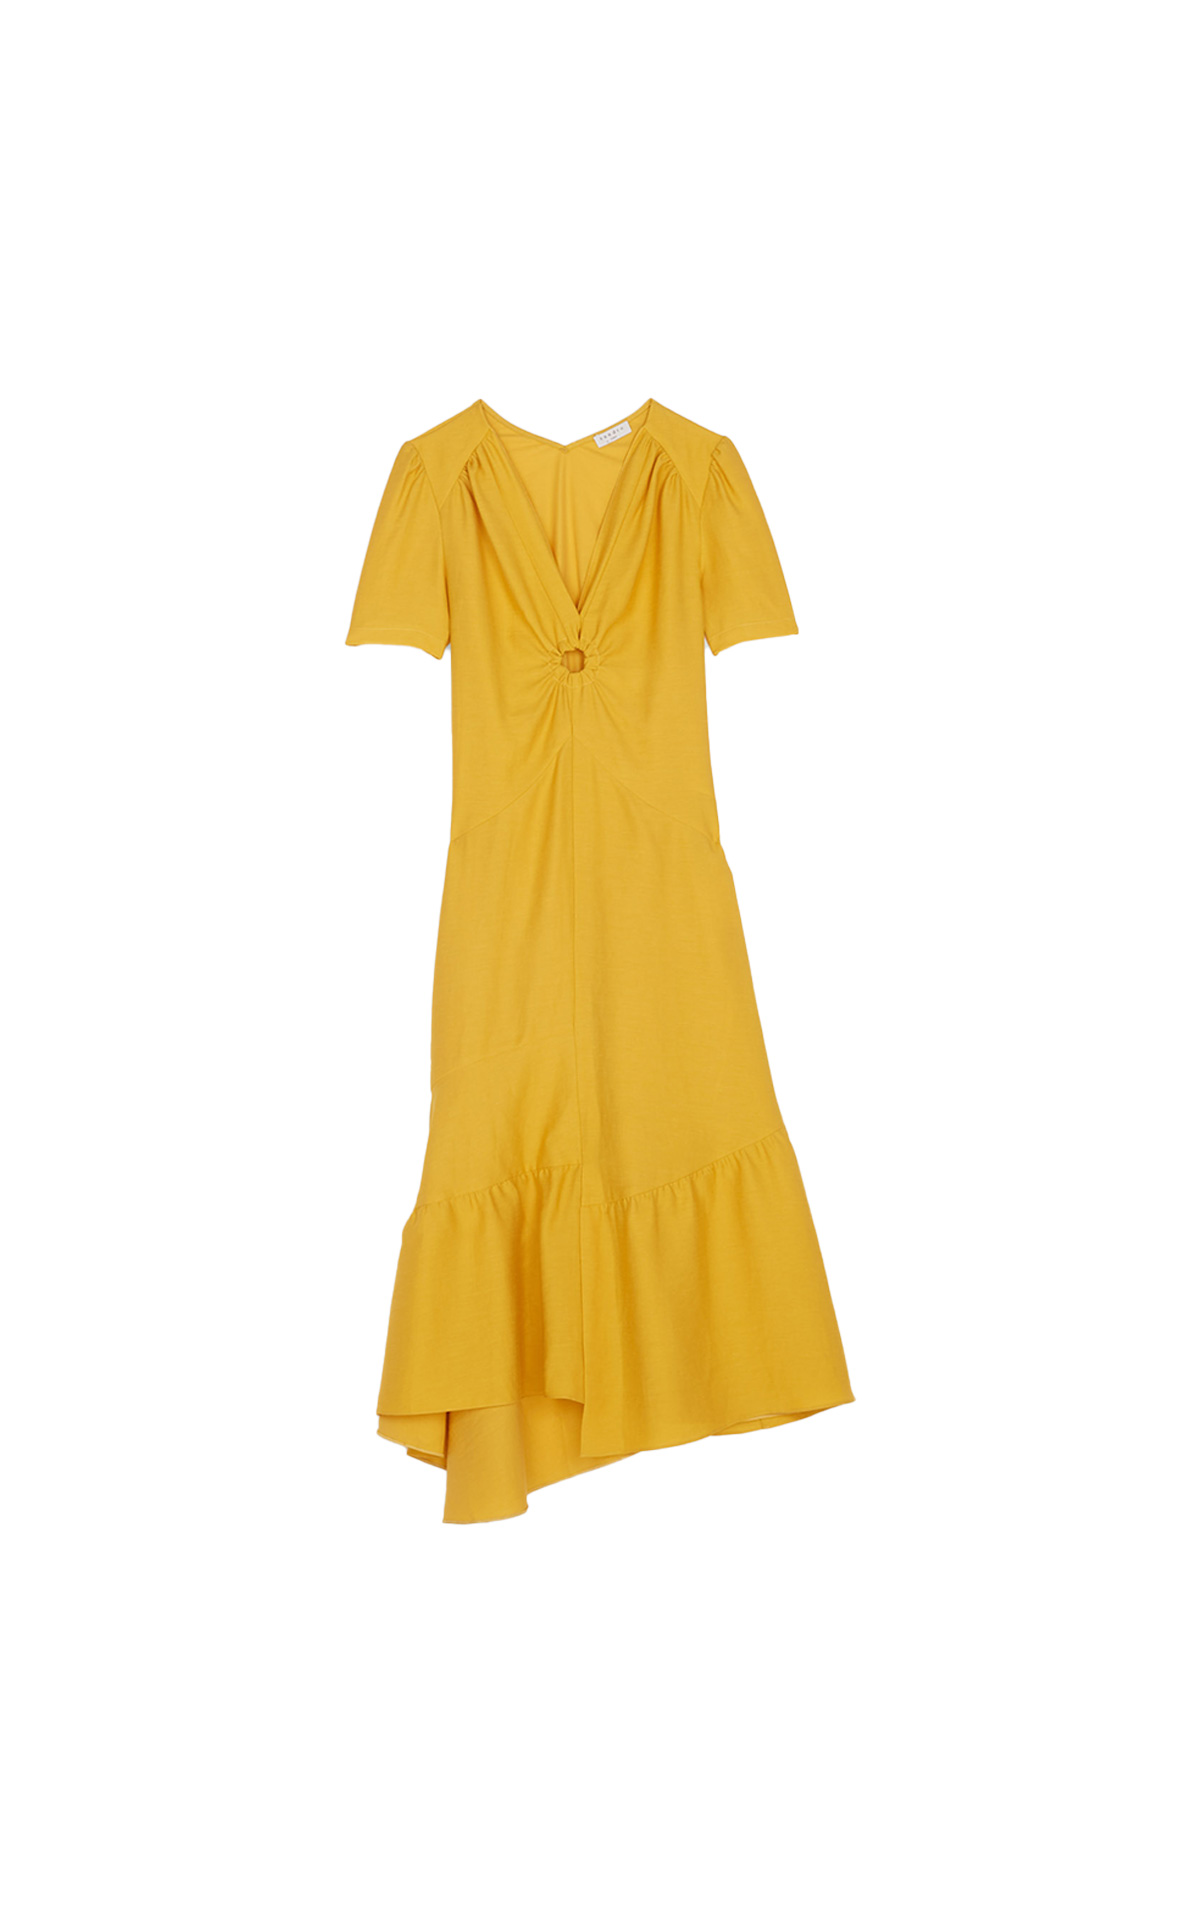 Sandro Long short-sleeved dress with a V neckline decorated with a ring and pintucking. The neckline can be worn to the front or back. Seen at The Bicester Village Shopping Collection